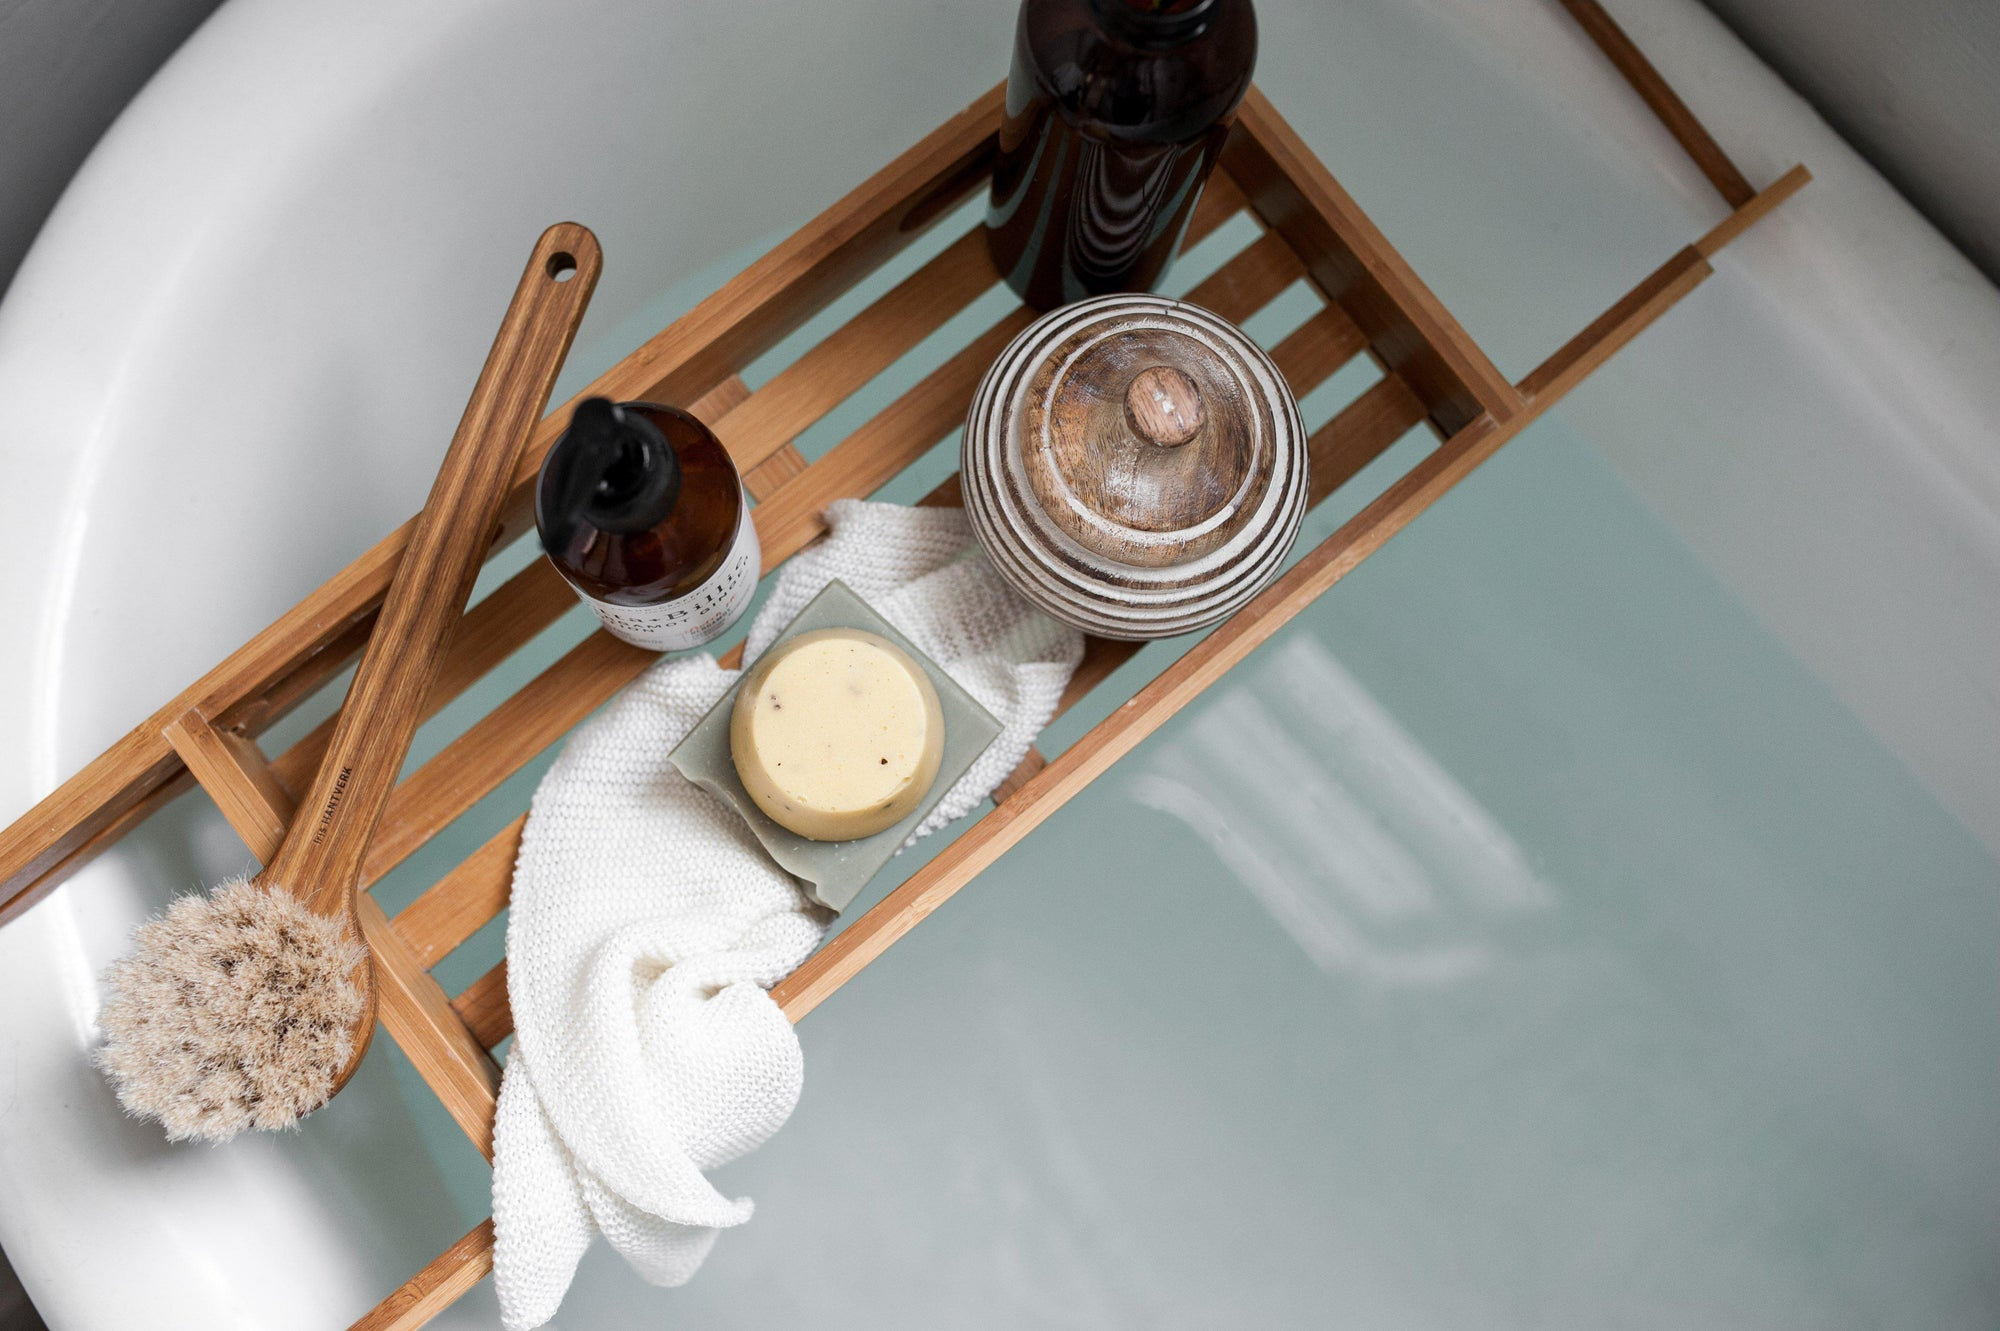 How To Recreate a Spa Experience at Home